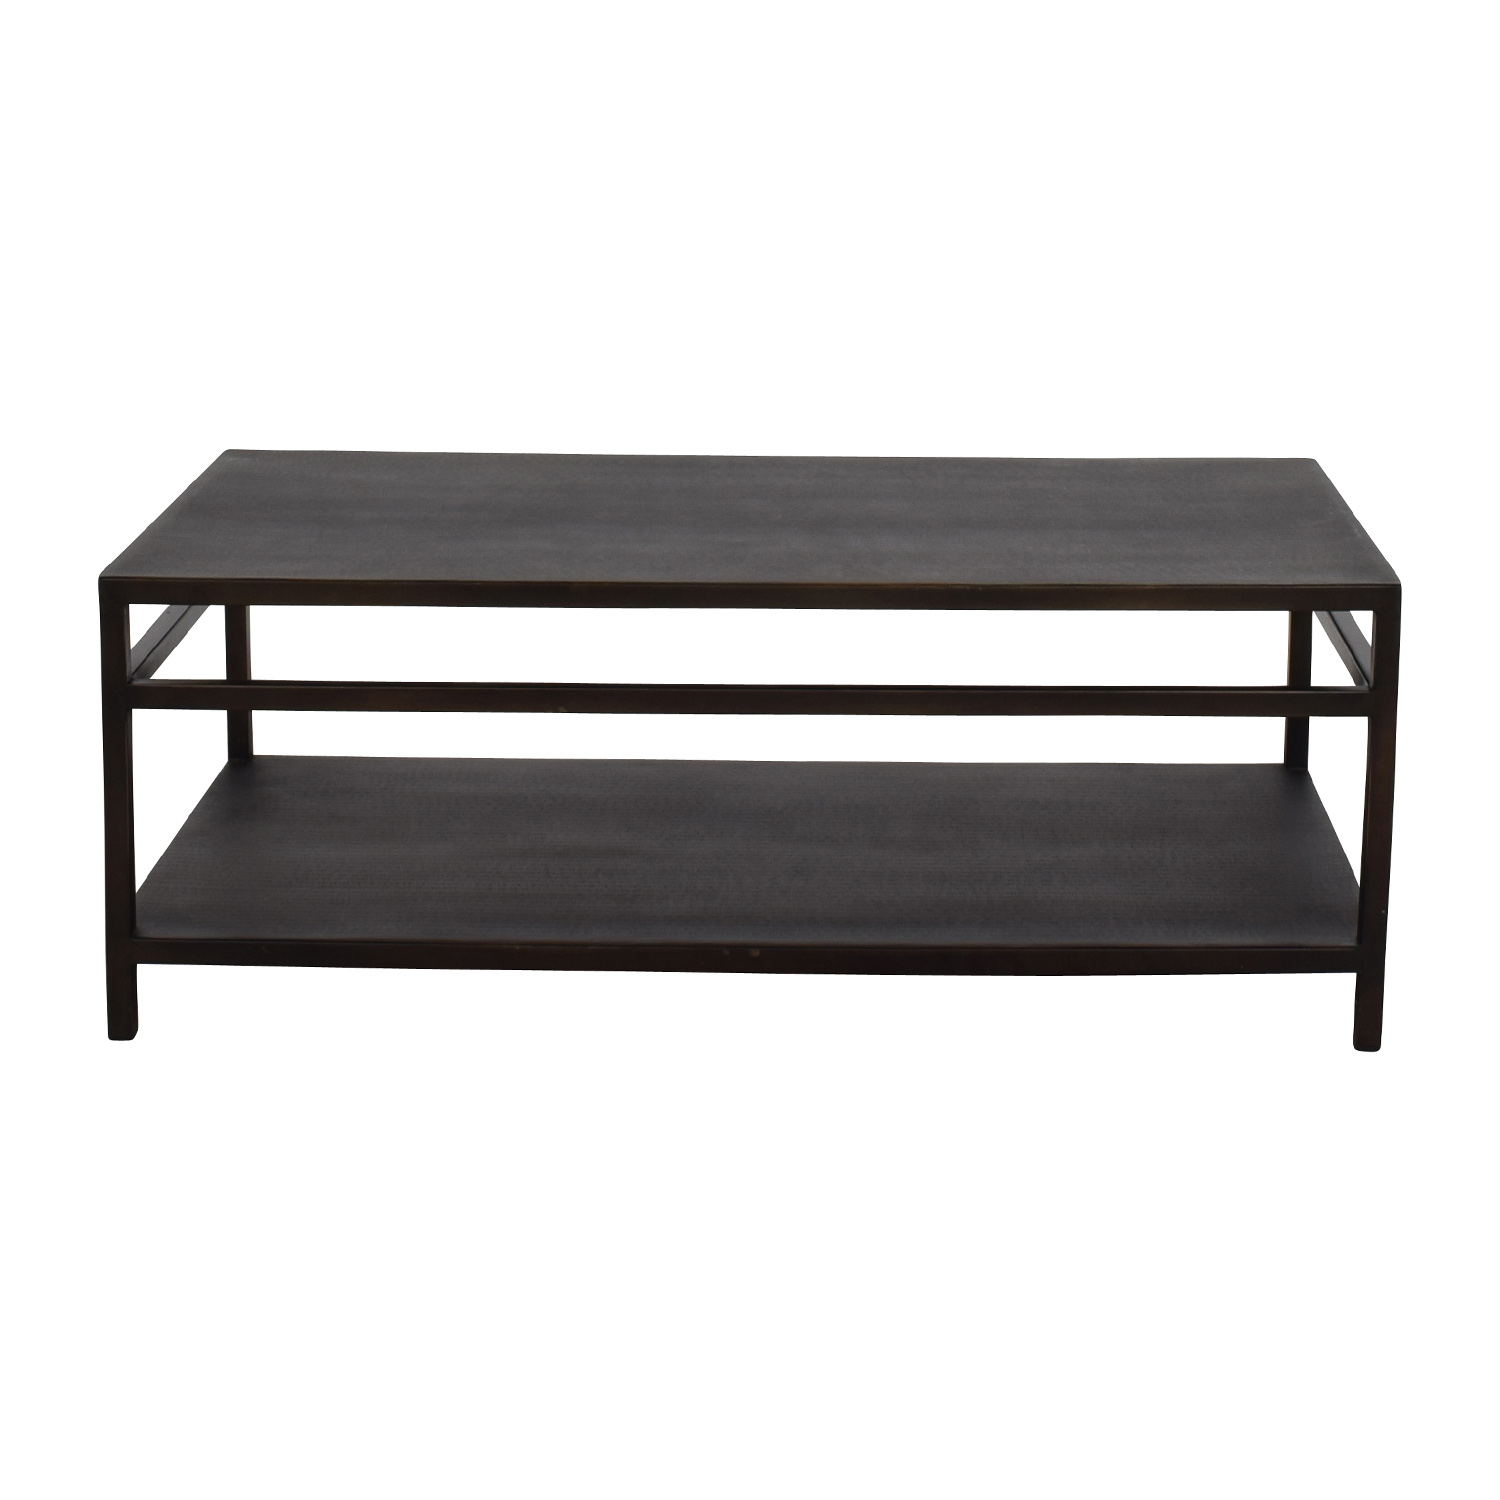 Modern Coffee Table Metal: Bloomingdale's Black Modern Metal Coffee Table